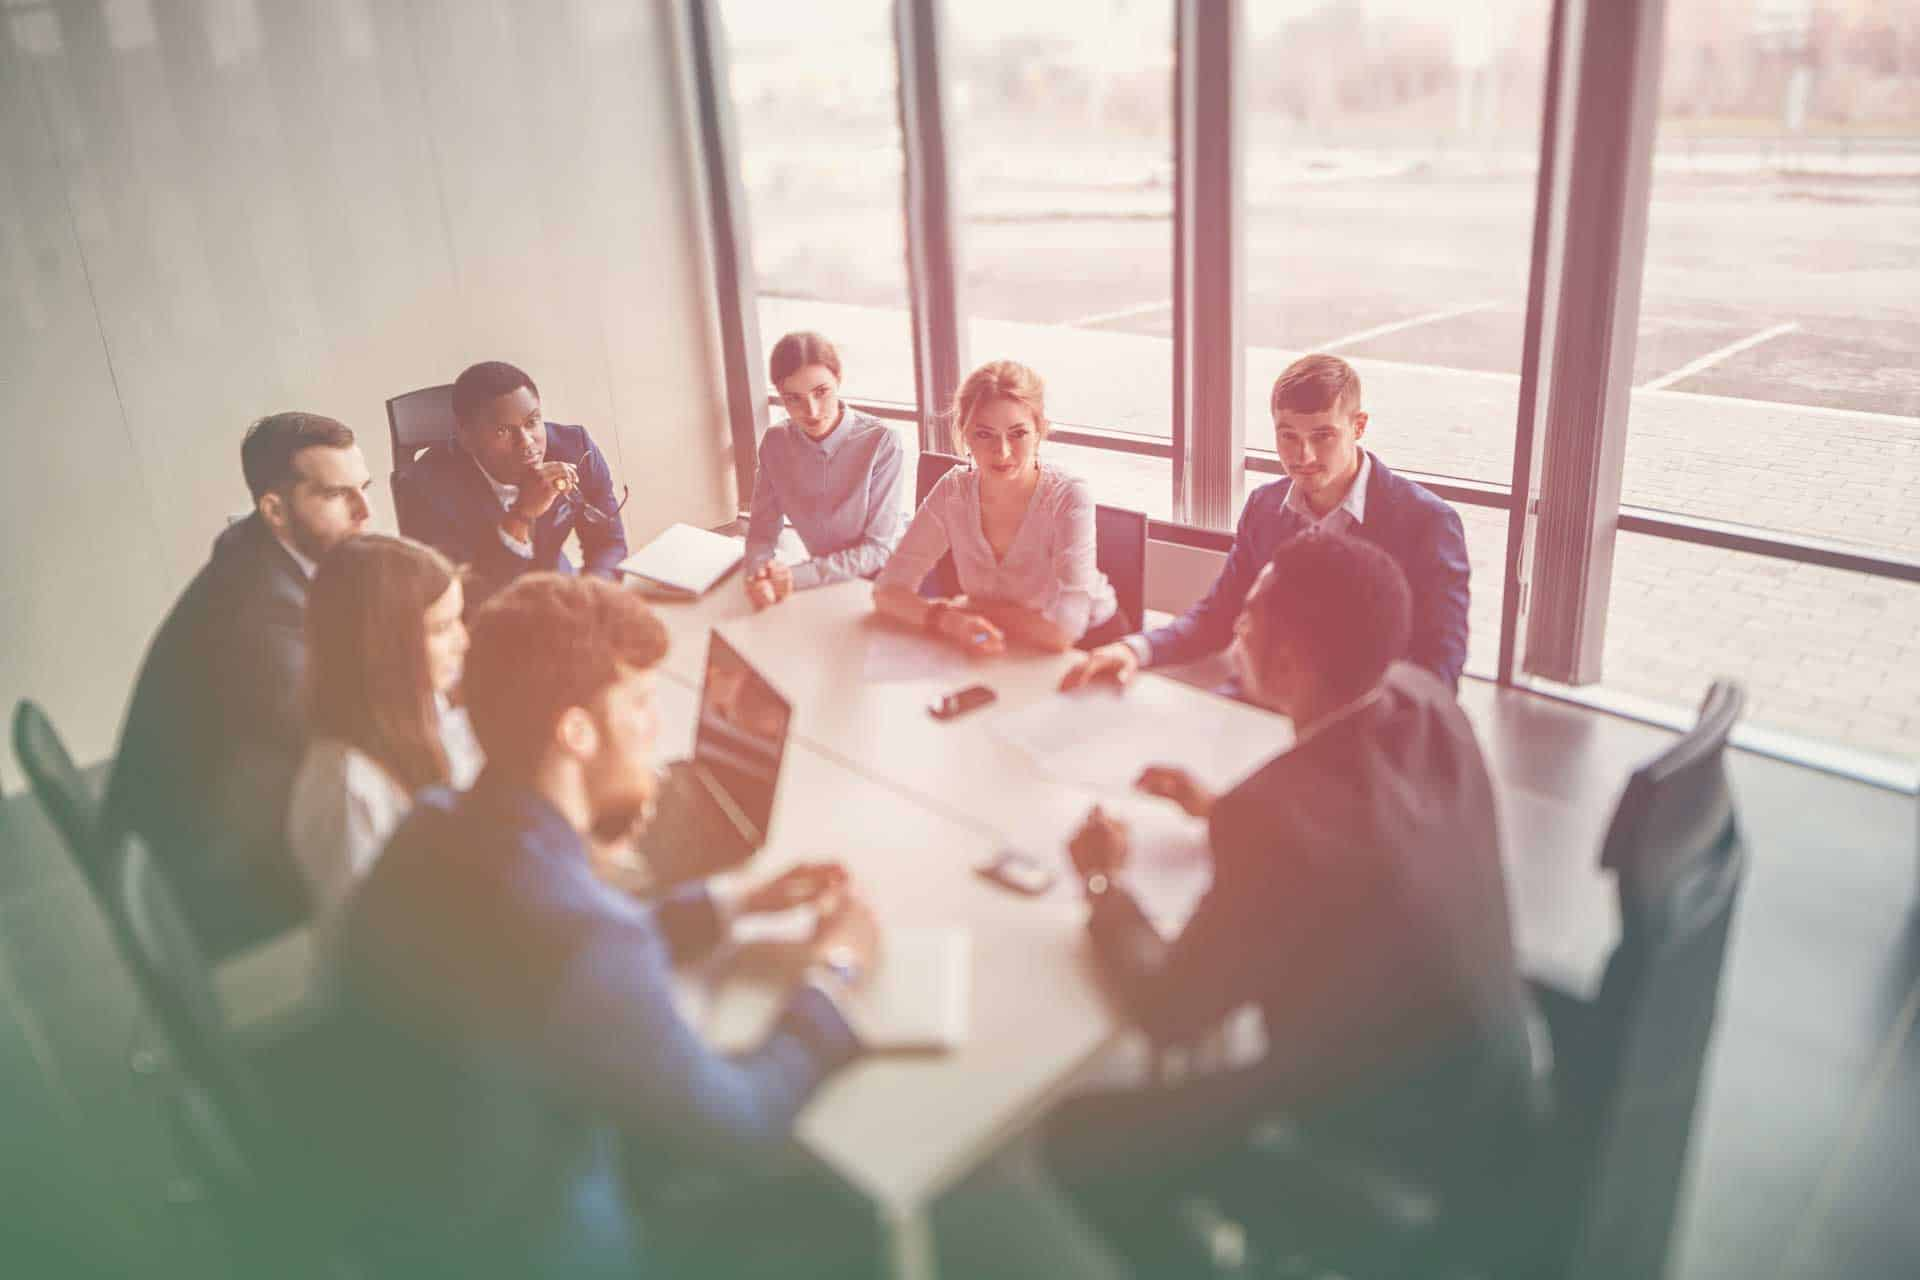 How to Find New Board Members